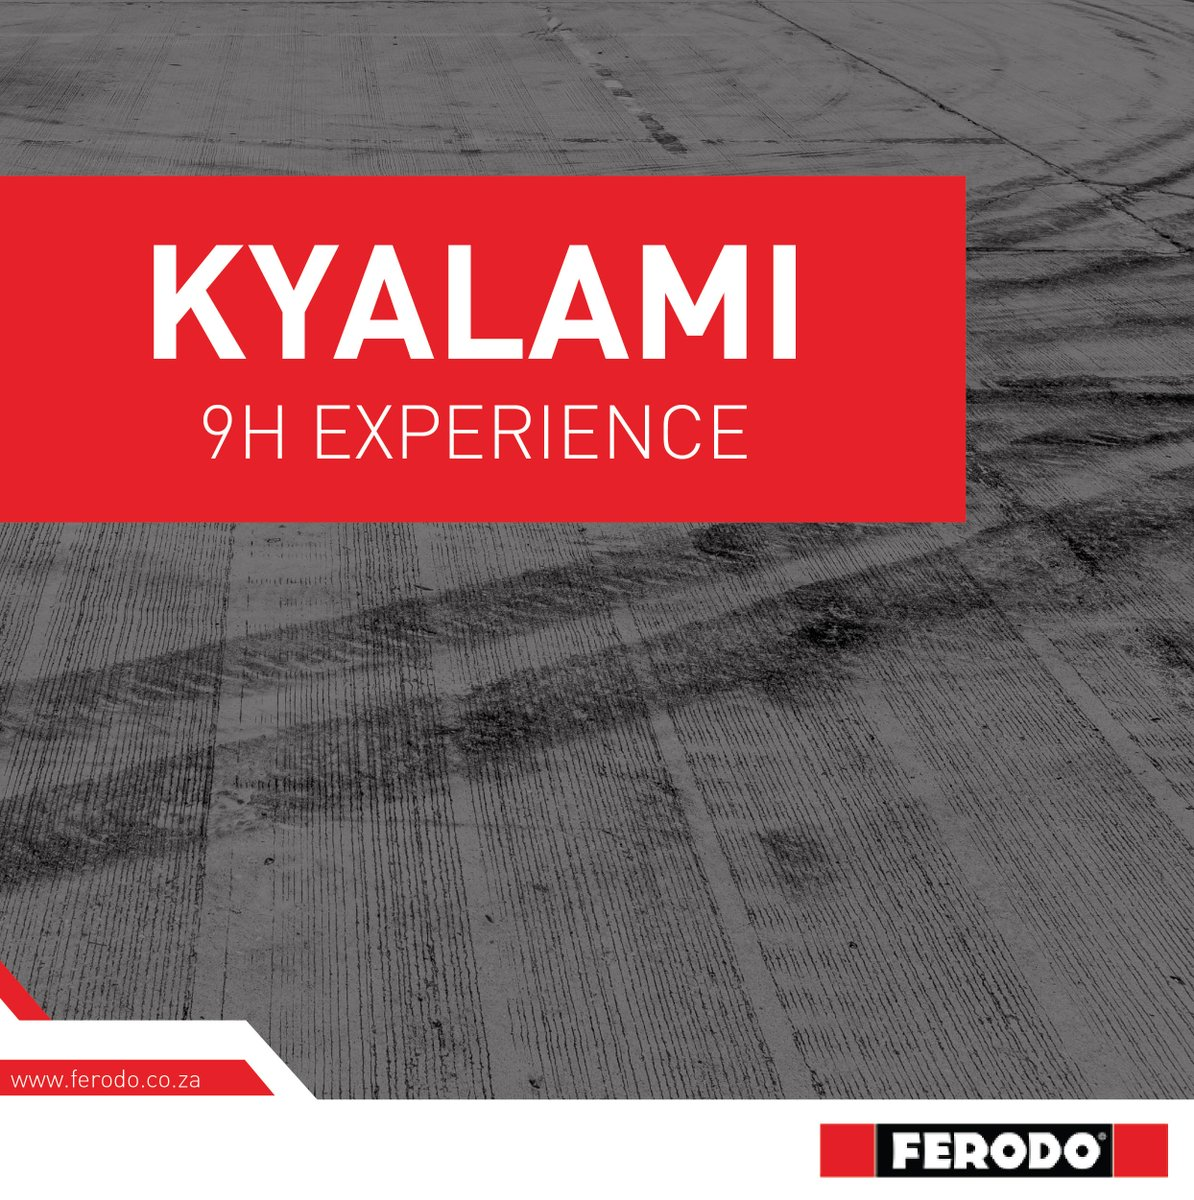 Don't forget to enter our awesome competition to win a VIP experience at the upcoming #Kyalami9H Intercontinental GT Challenge. To enter, simply head to the URL below and enter your details!  Enter here: https://t.co/OdgvM30WjA https://t.co/dh3I7b3cJX